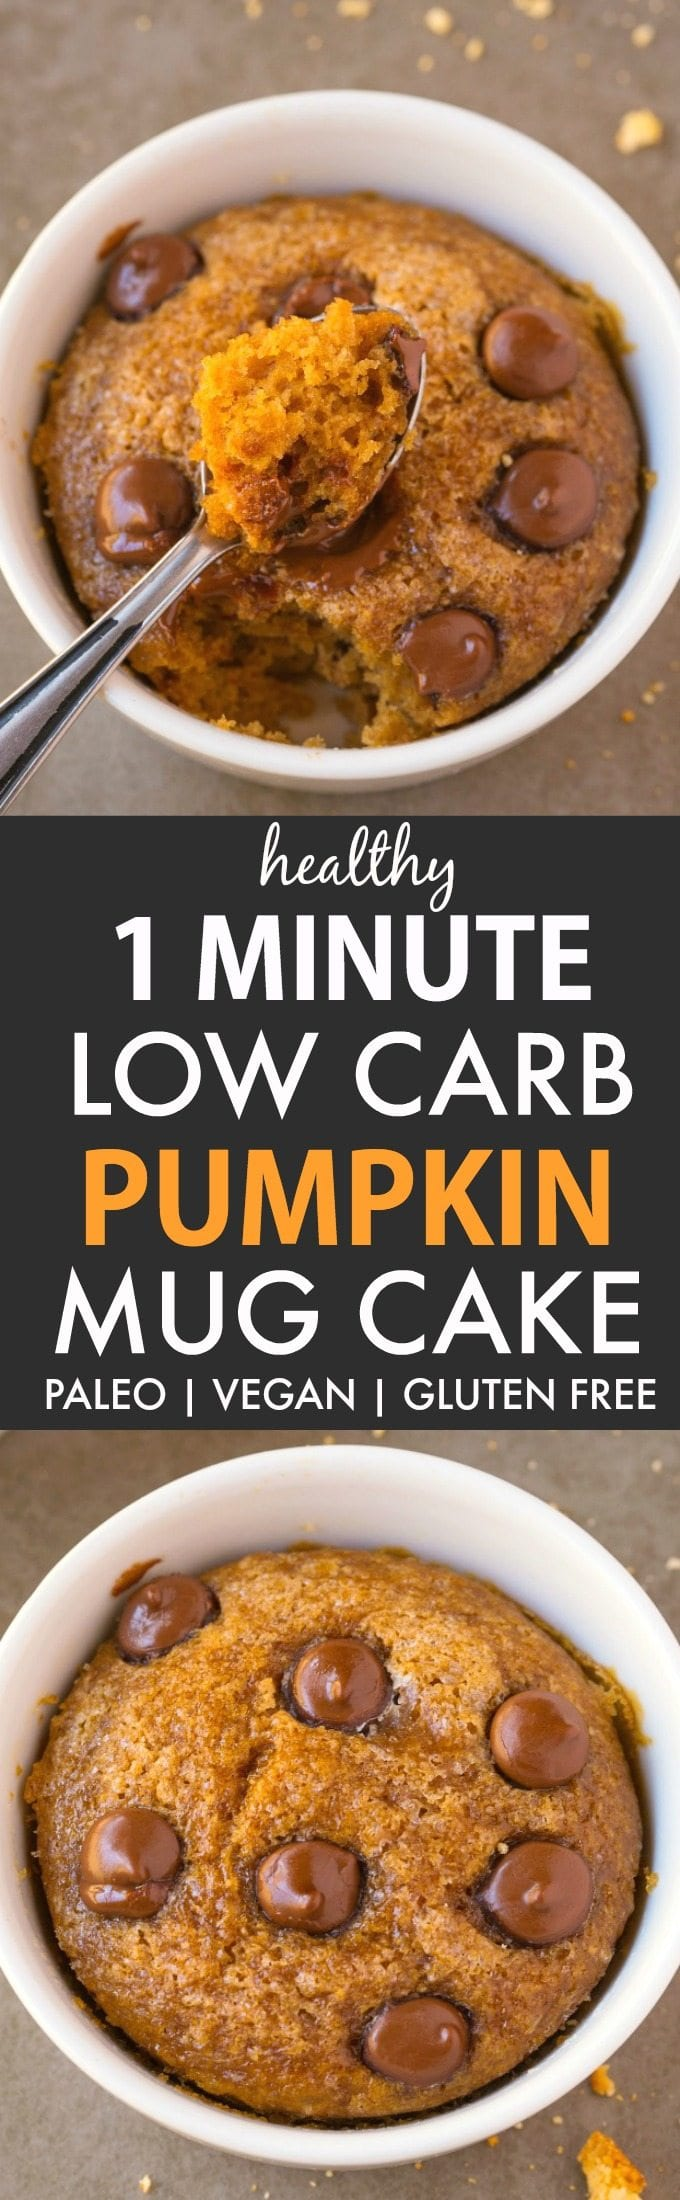 Healthy 1 Minute Low Carb Pumpkin Mug Cake (V, GF, P, DF)- A fool-proof, guilt-free mug cake recipe loaded with pumpkin flavor and super fluffy and light! Oven option included! {vegan, gluten free paleo recipe}- thebigmansworld.com #pumpkin #mugcake